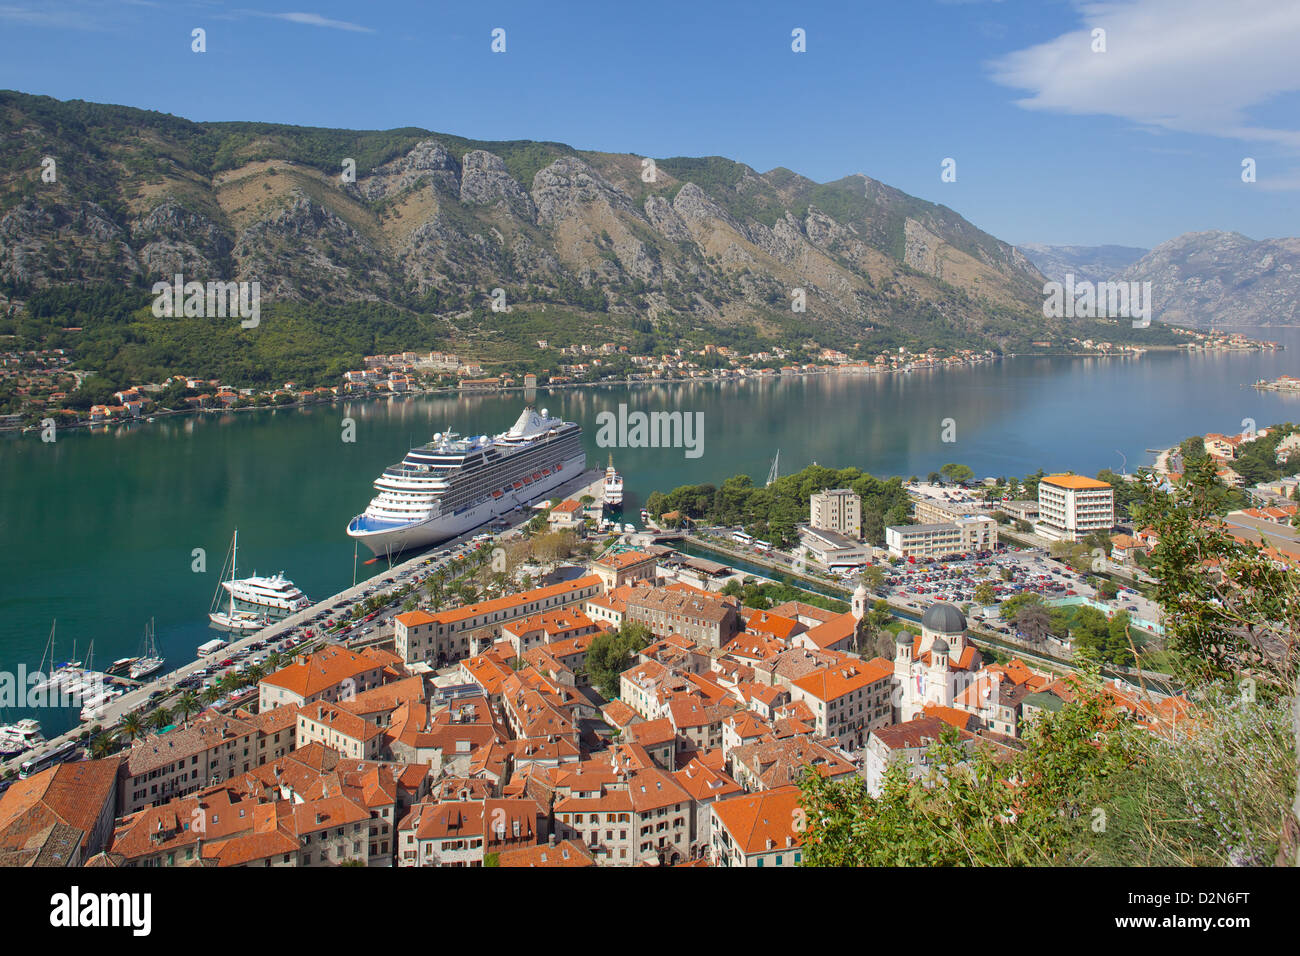 View over Old Town and cruise ship in Port, Kotor, UNESCO World Heritage Site, Montenegro, Europe - Stock Image